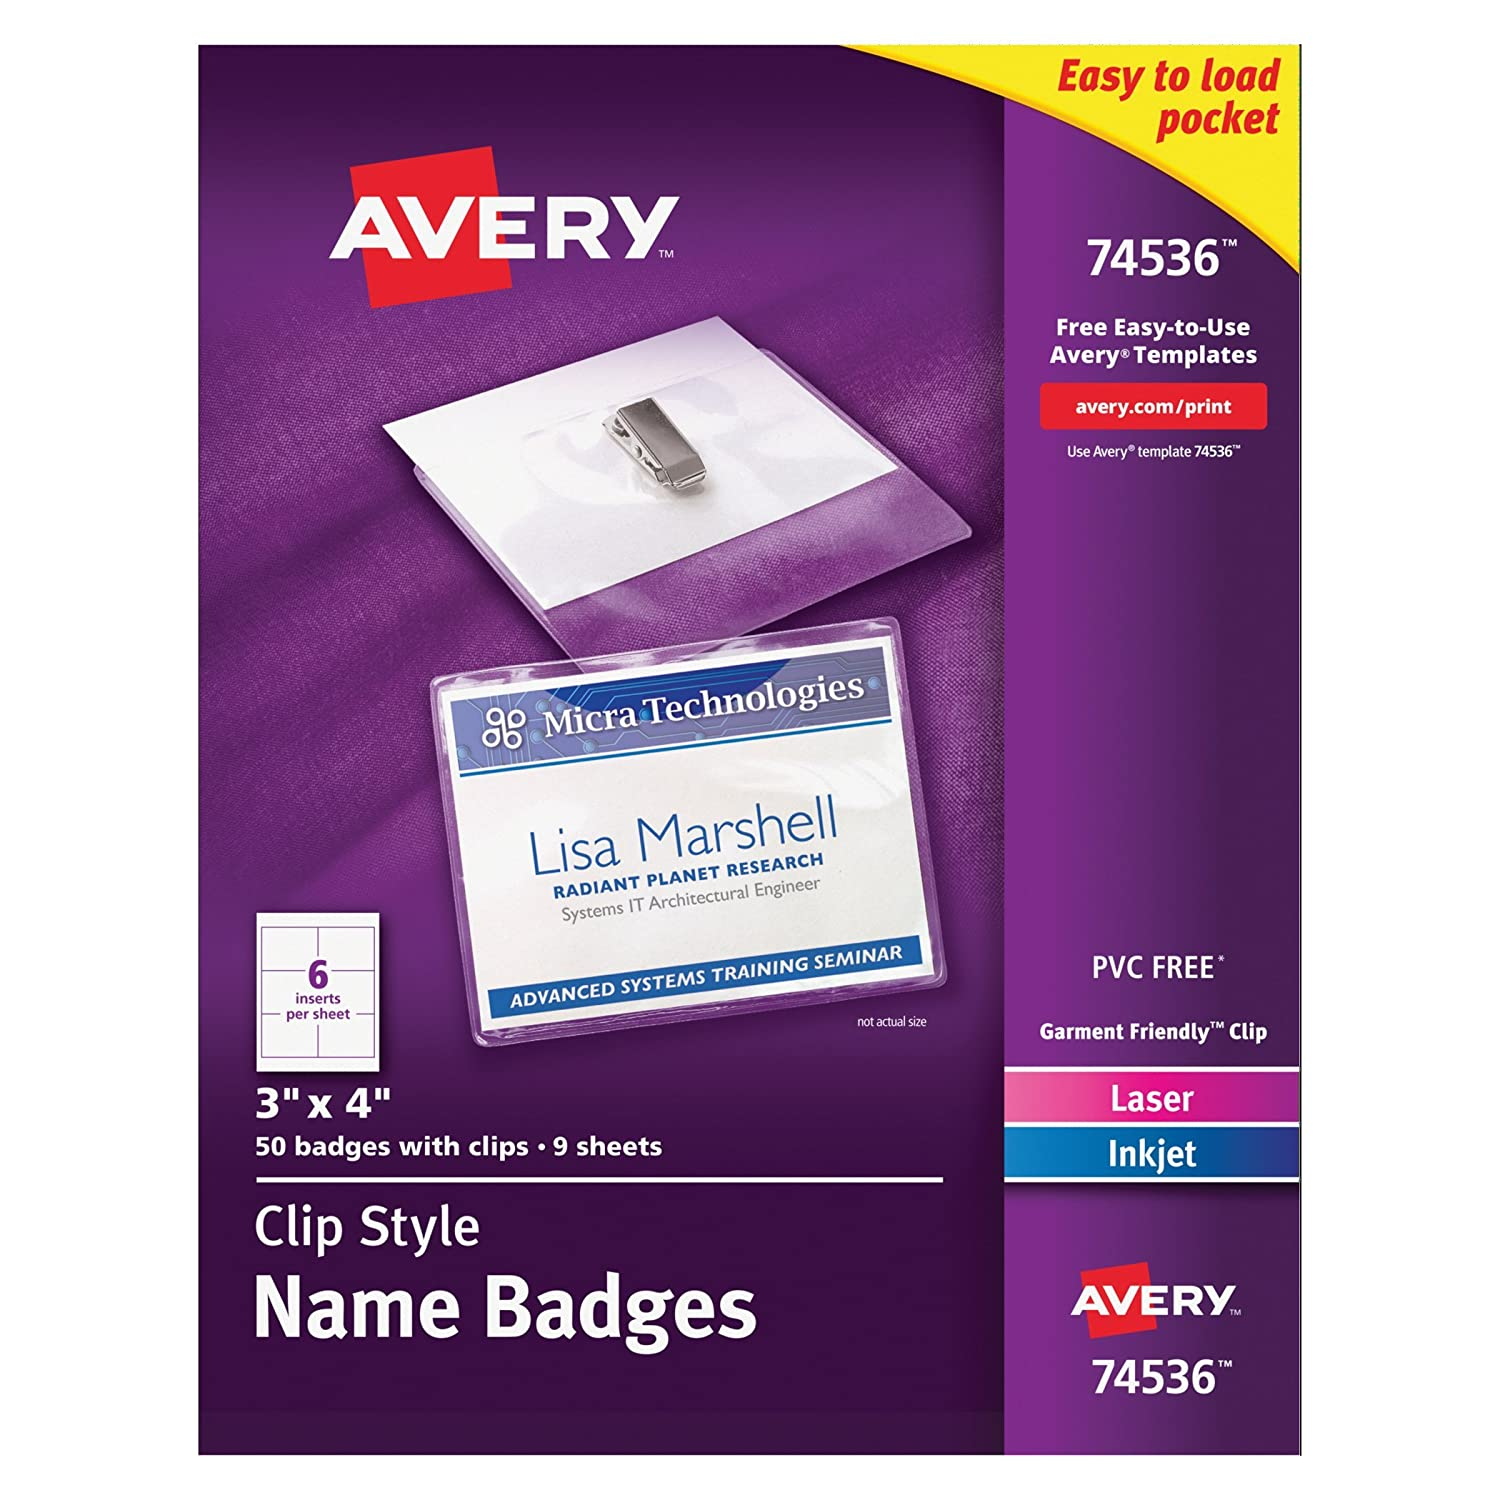 Amazon avery clip name badges print or write 3 x 4 50 amazon avery clip name badges print or write 3 x 4 50 inserts badge holders with clips 74536 badge holders office products wajeb Gallery